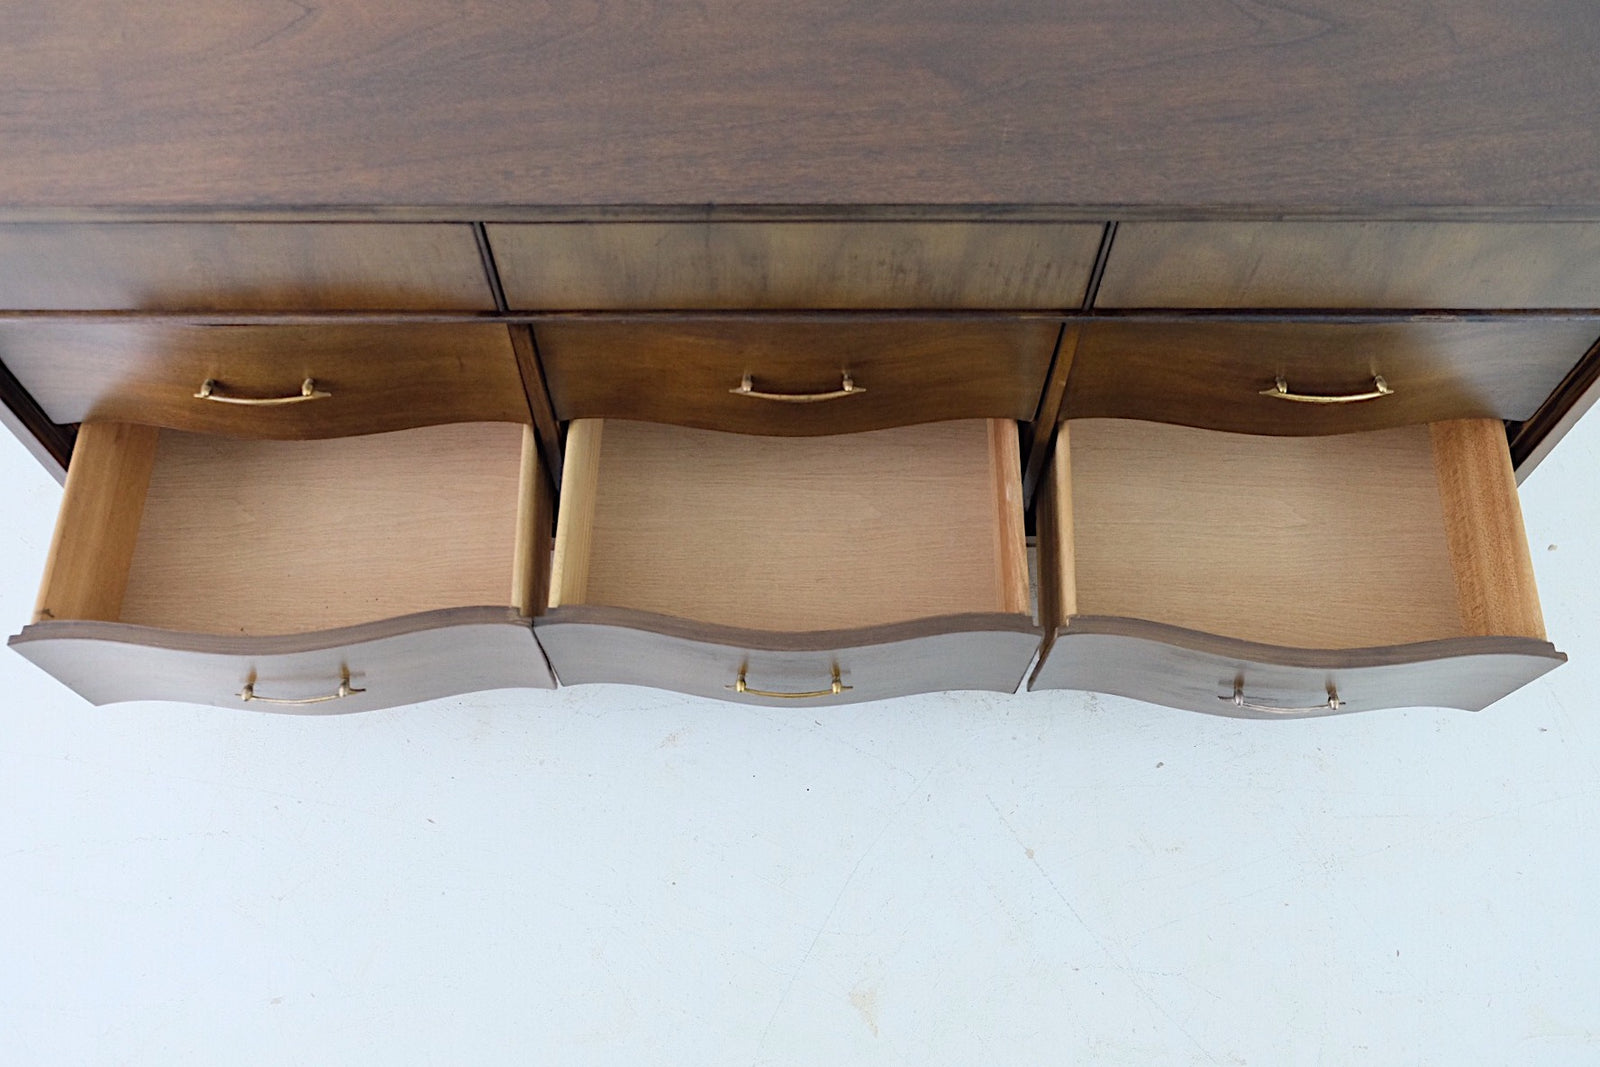 Curved Drawer Fronts Brass Pulls Mid Century Modern Lowboy Dresser Nine Drawers